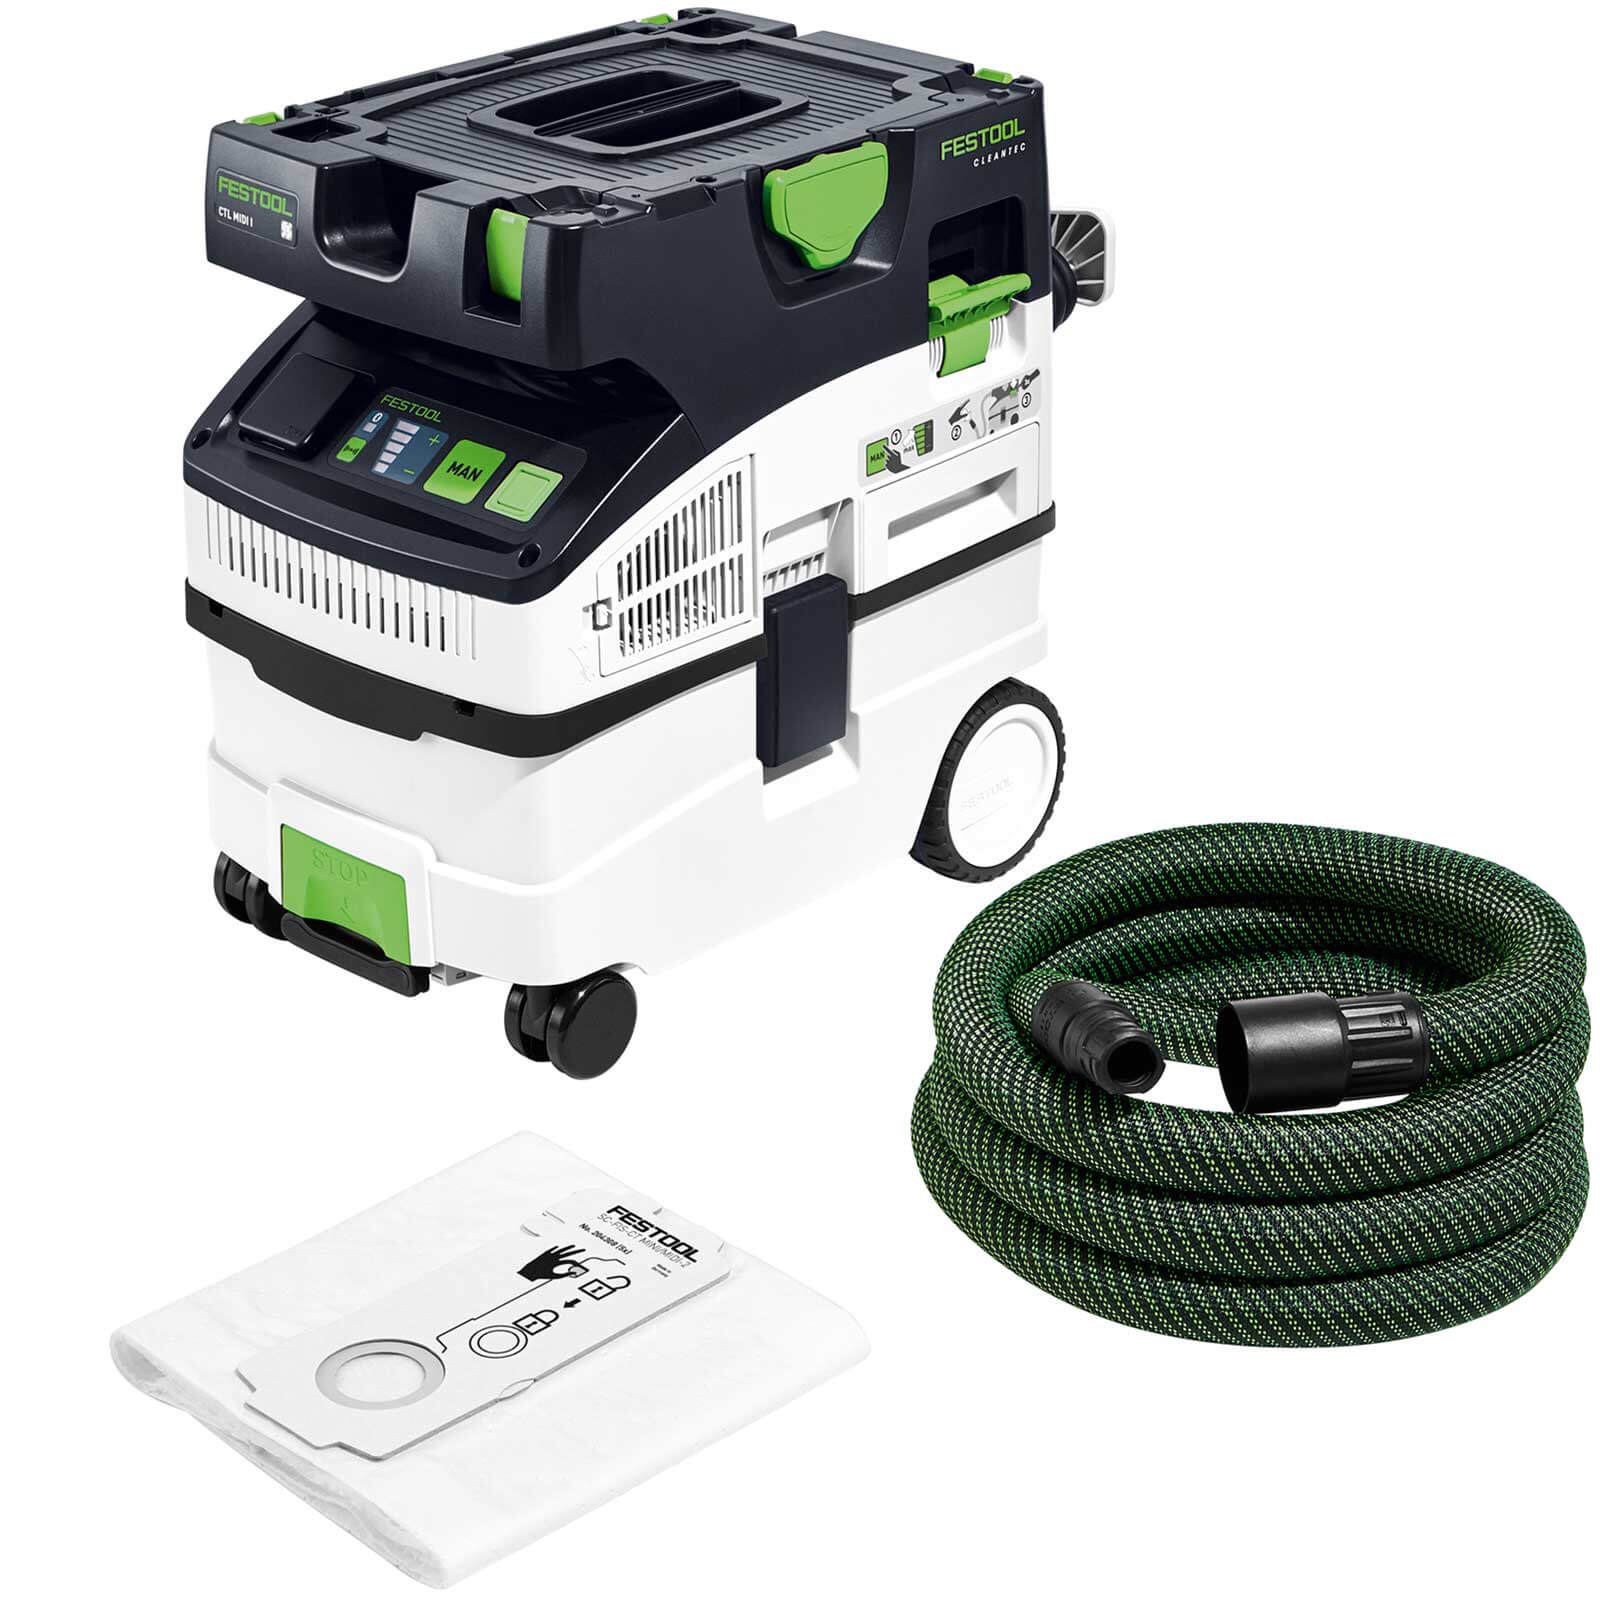 Festool CTL Midi Cleantec L Class Mobile Dust Extractor 110v